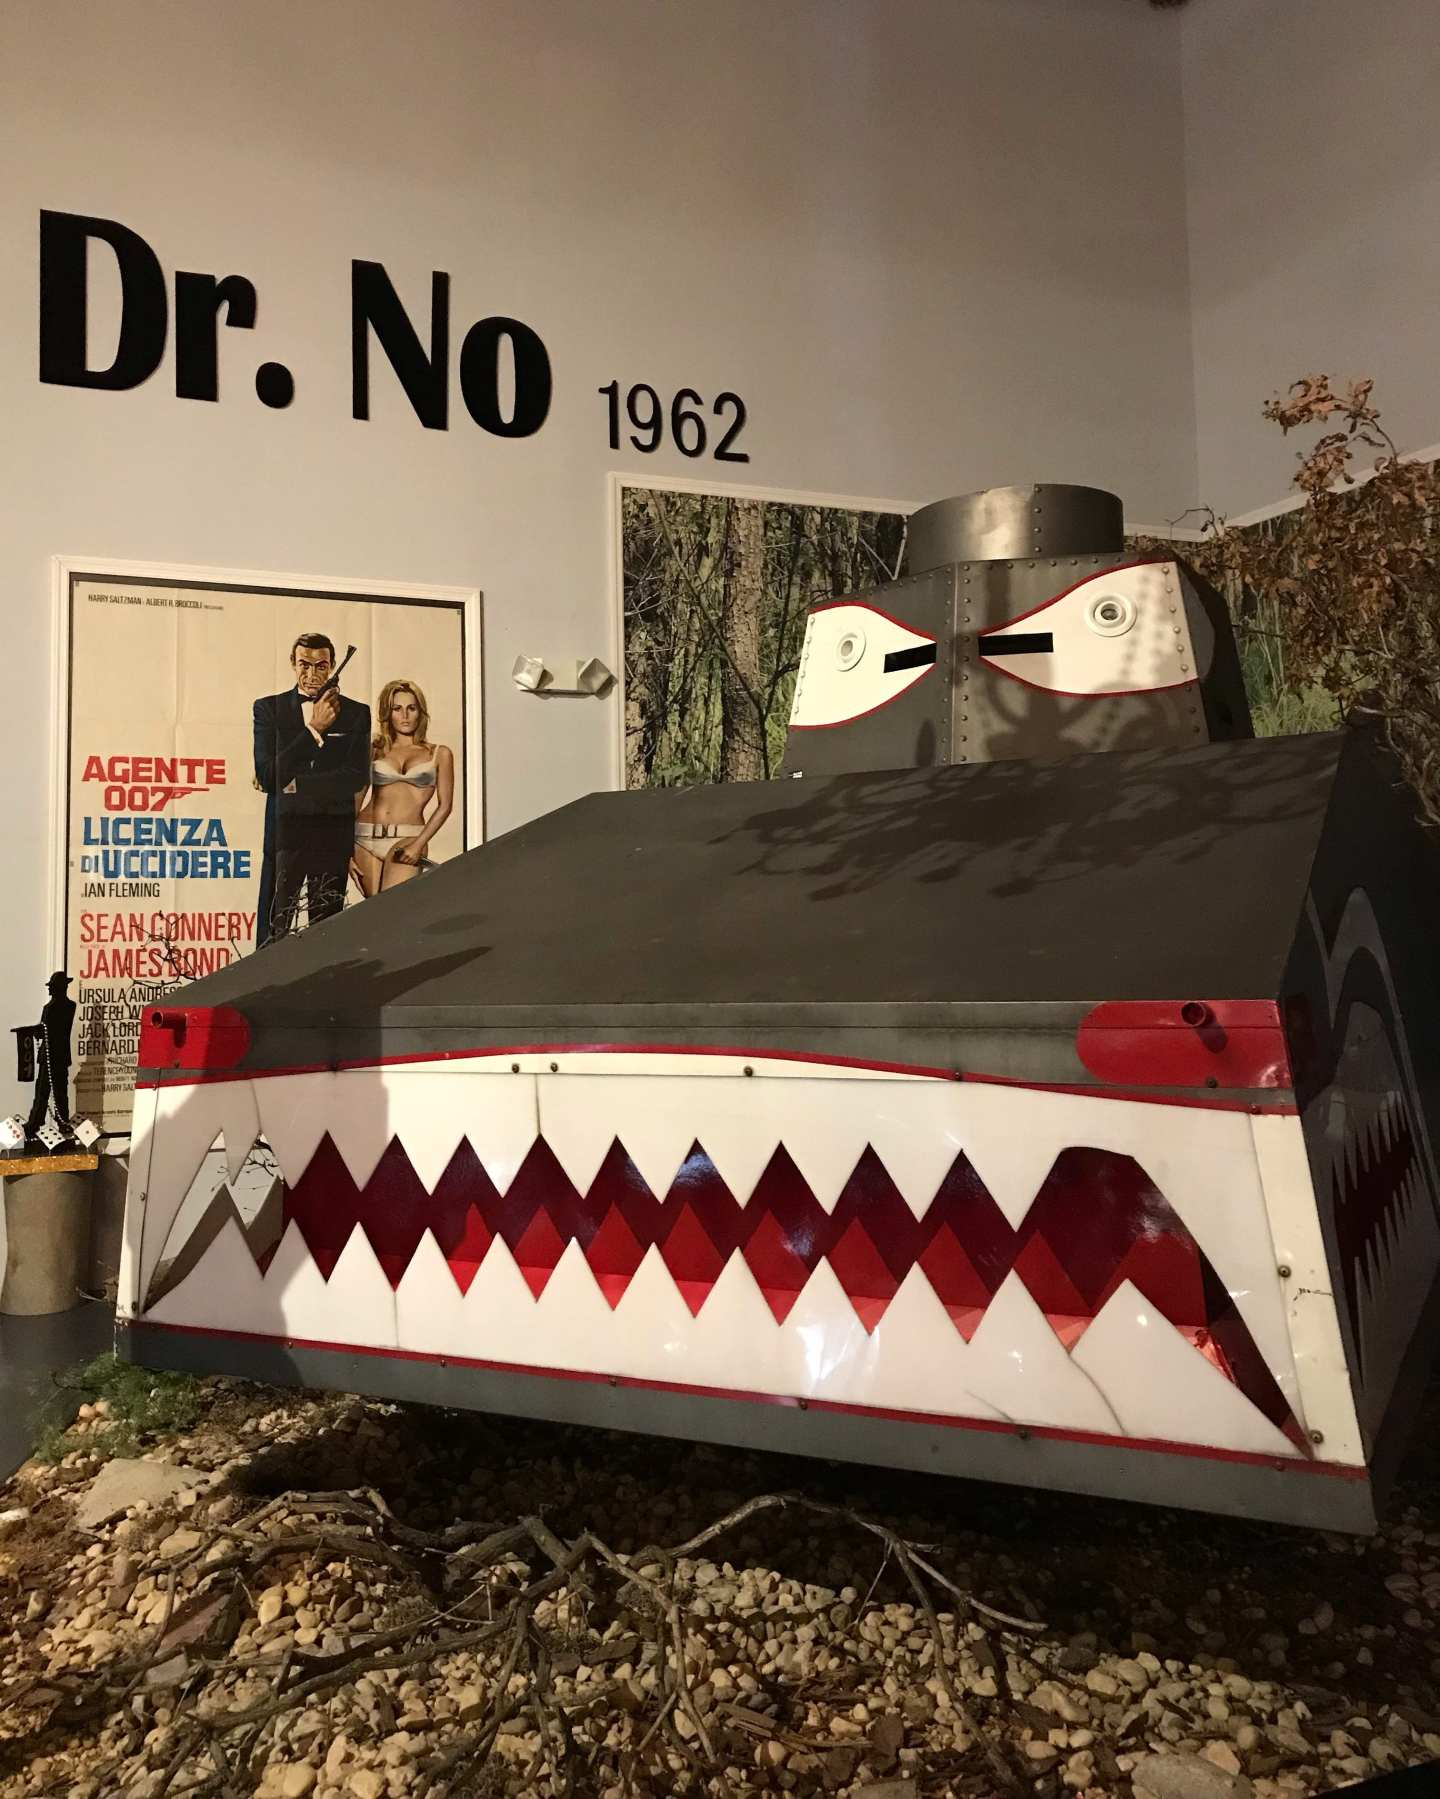 Dr No Tank in the Dezer Collection